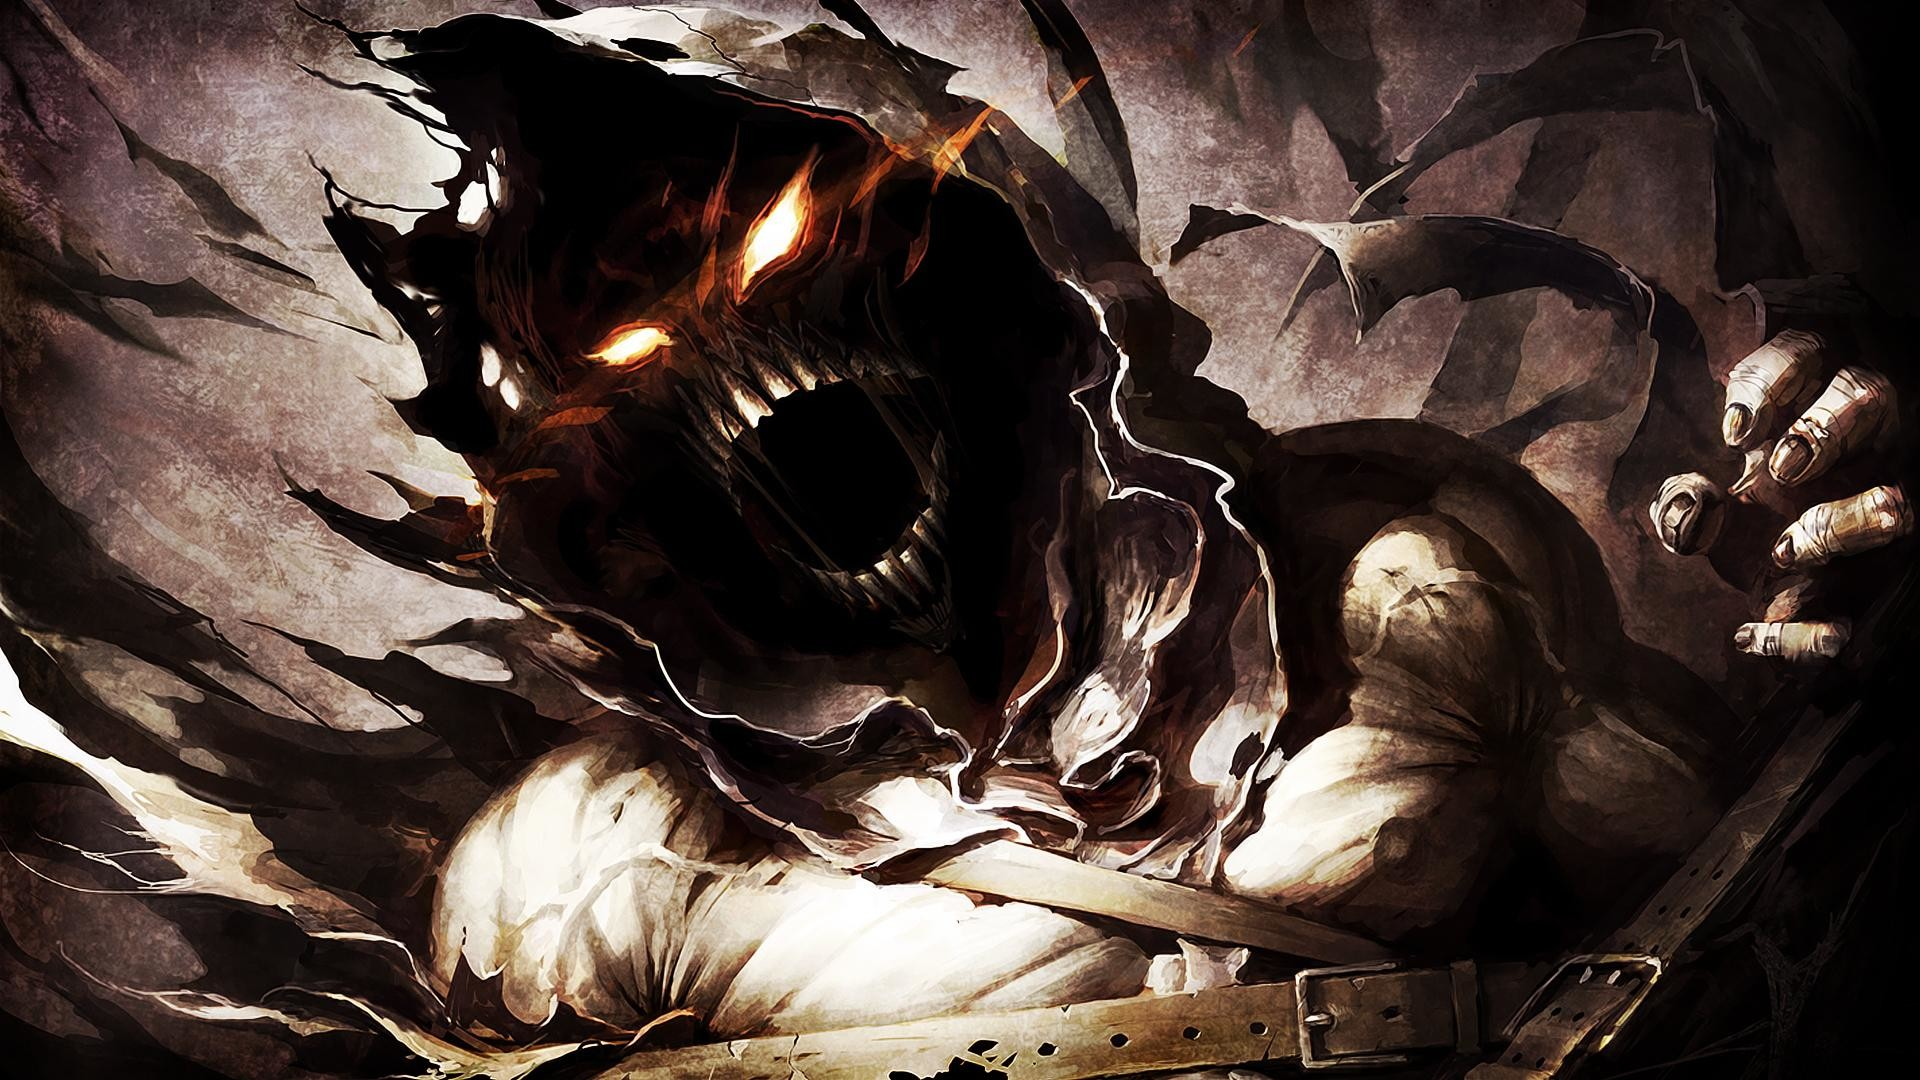 Disturbed wallpapers for iphone